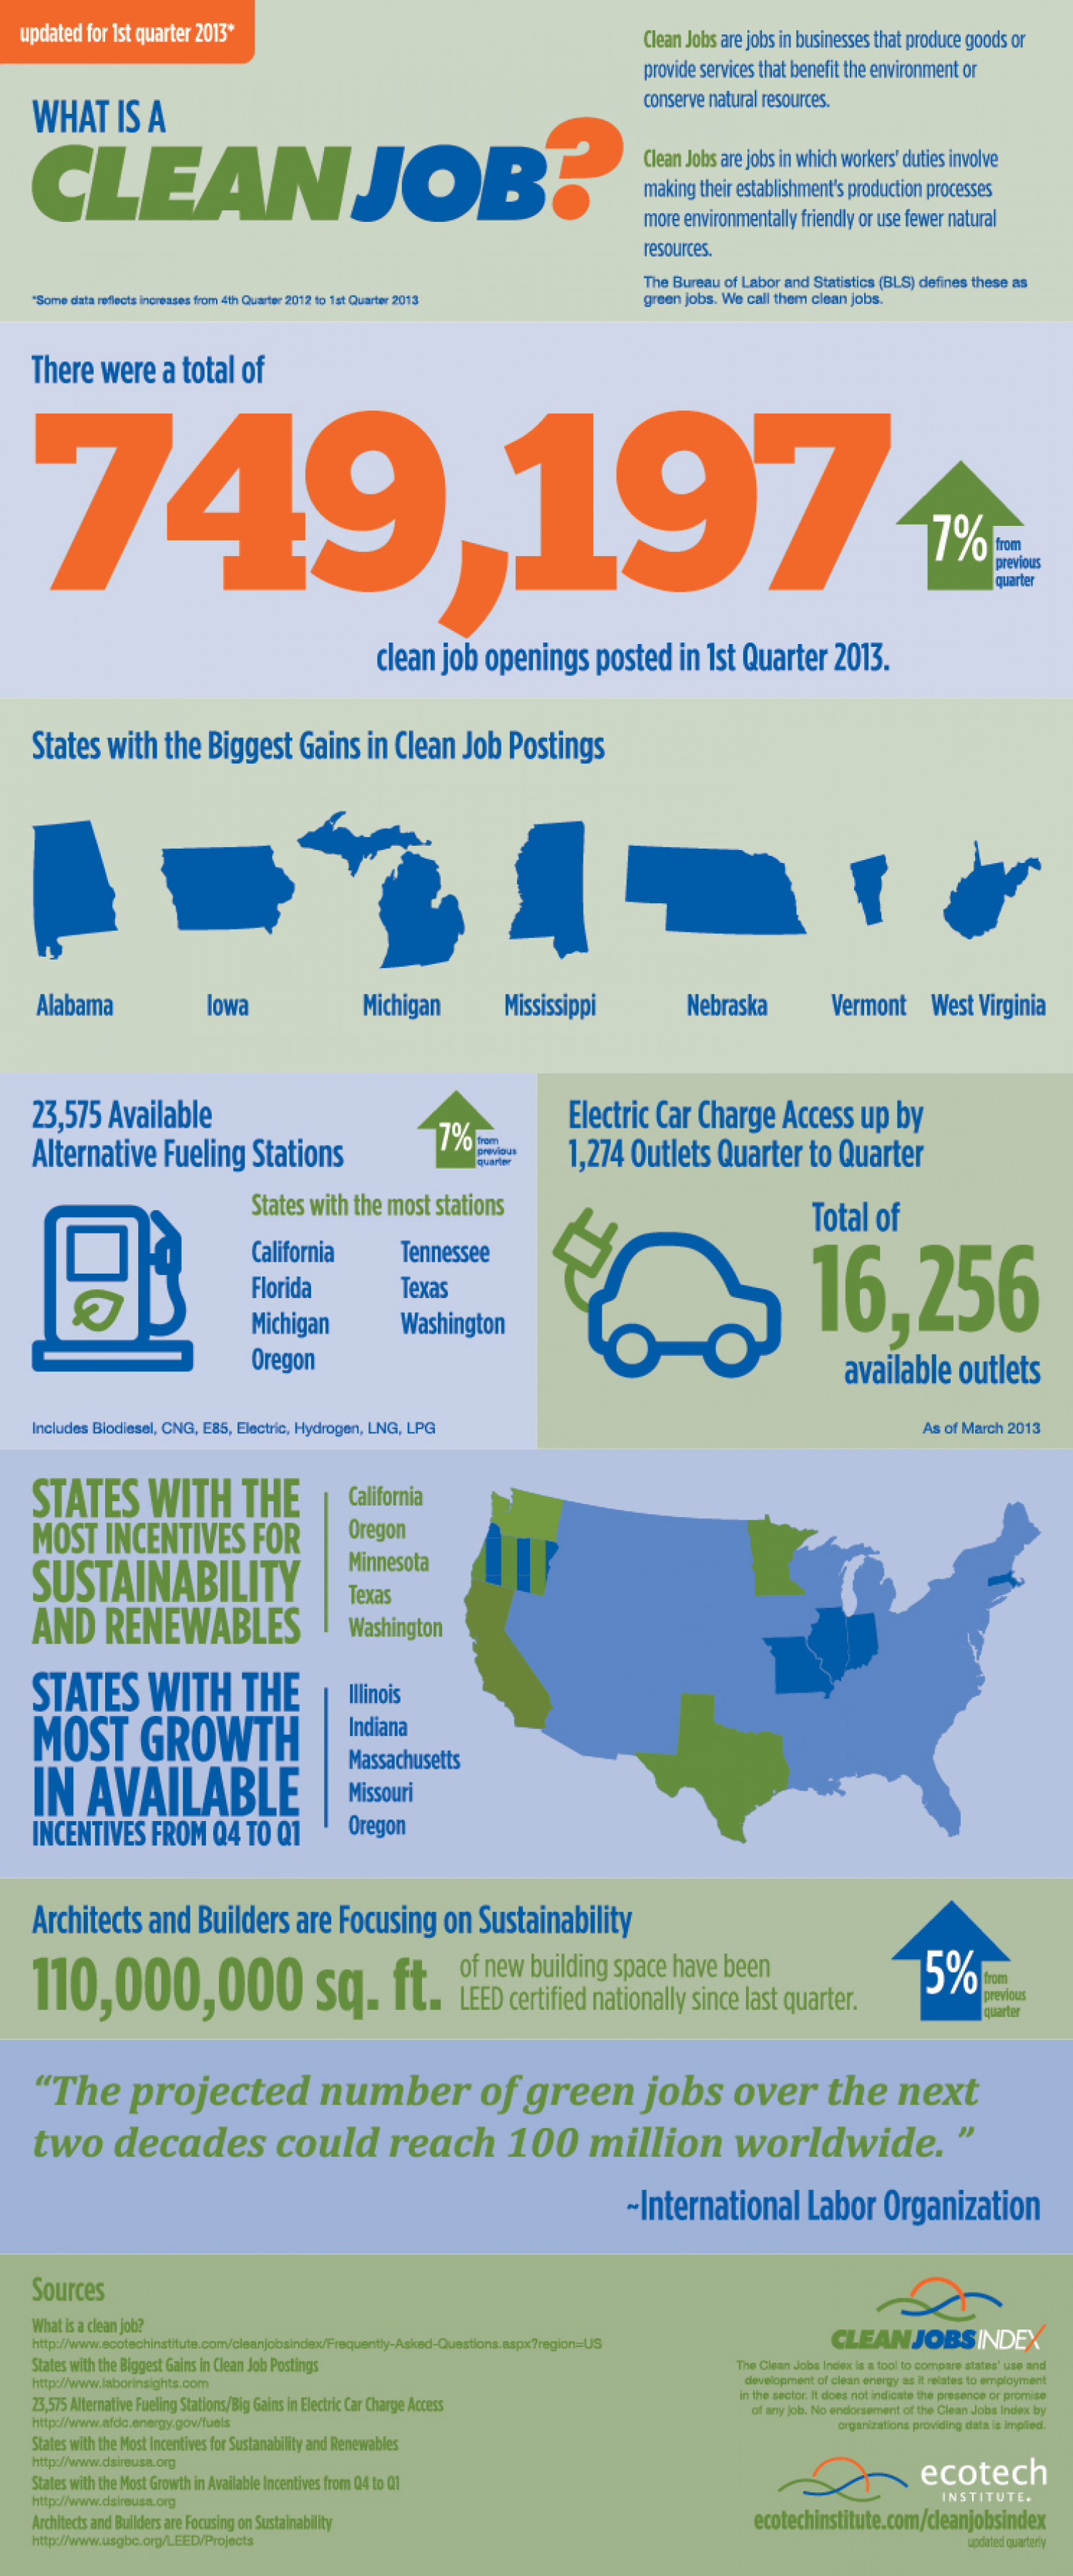 Clean Jobs Index Shows the U.S. Had Nearly 750,000 Clean Job Openings in First Quarter of 2013 Infographic